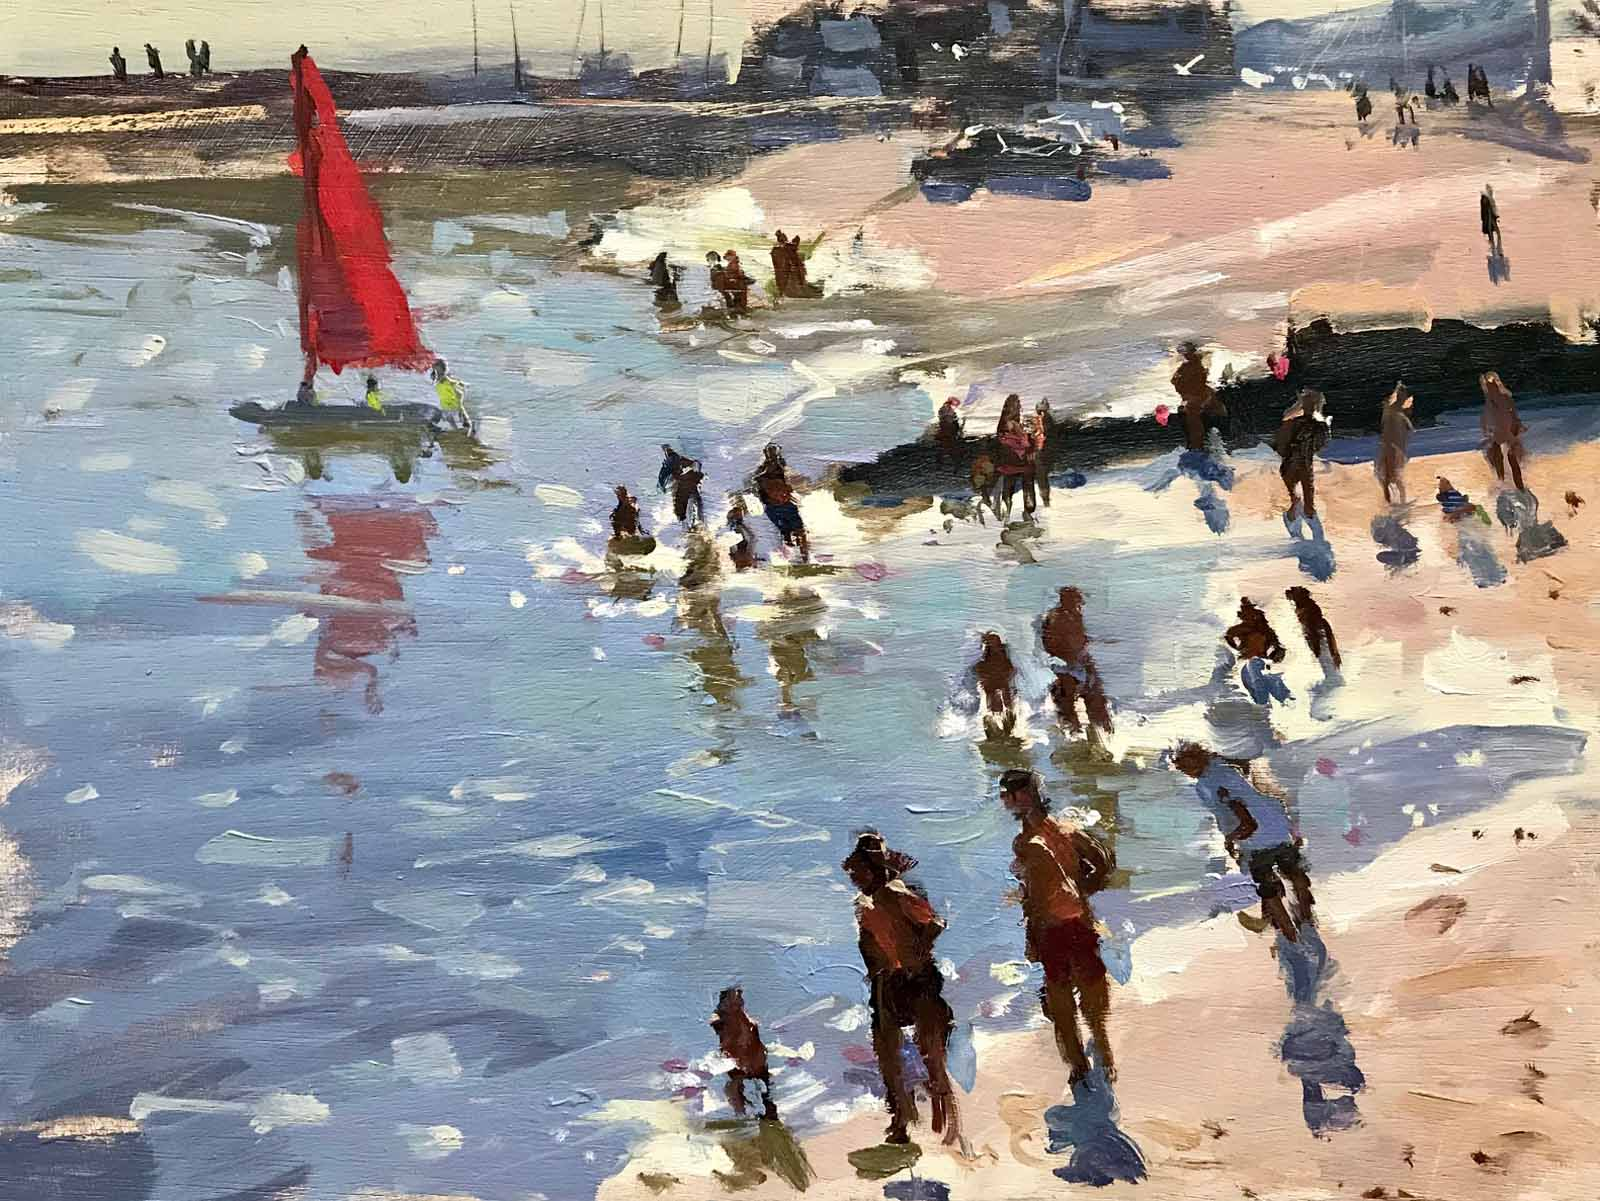 Red Sail and Bathers, Cobb Beach